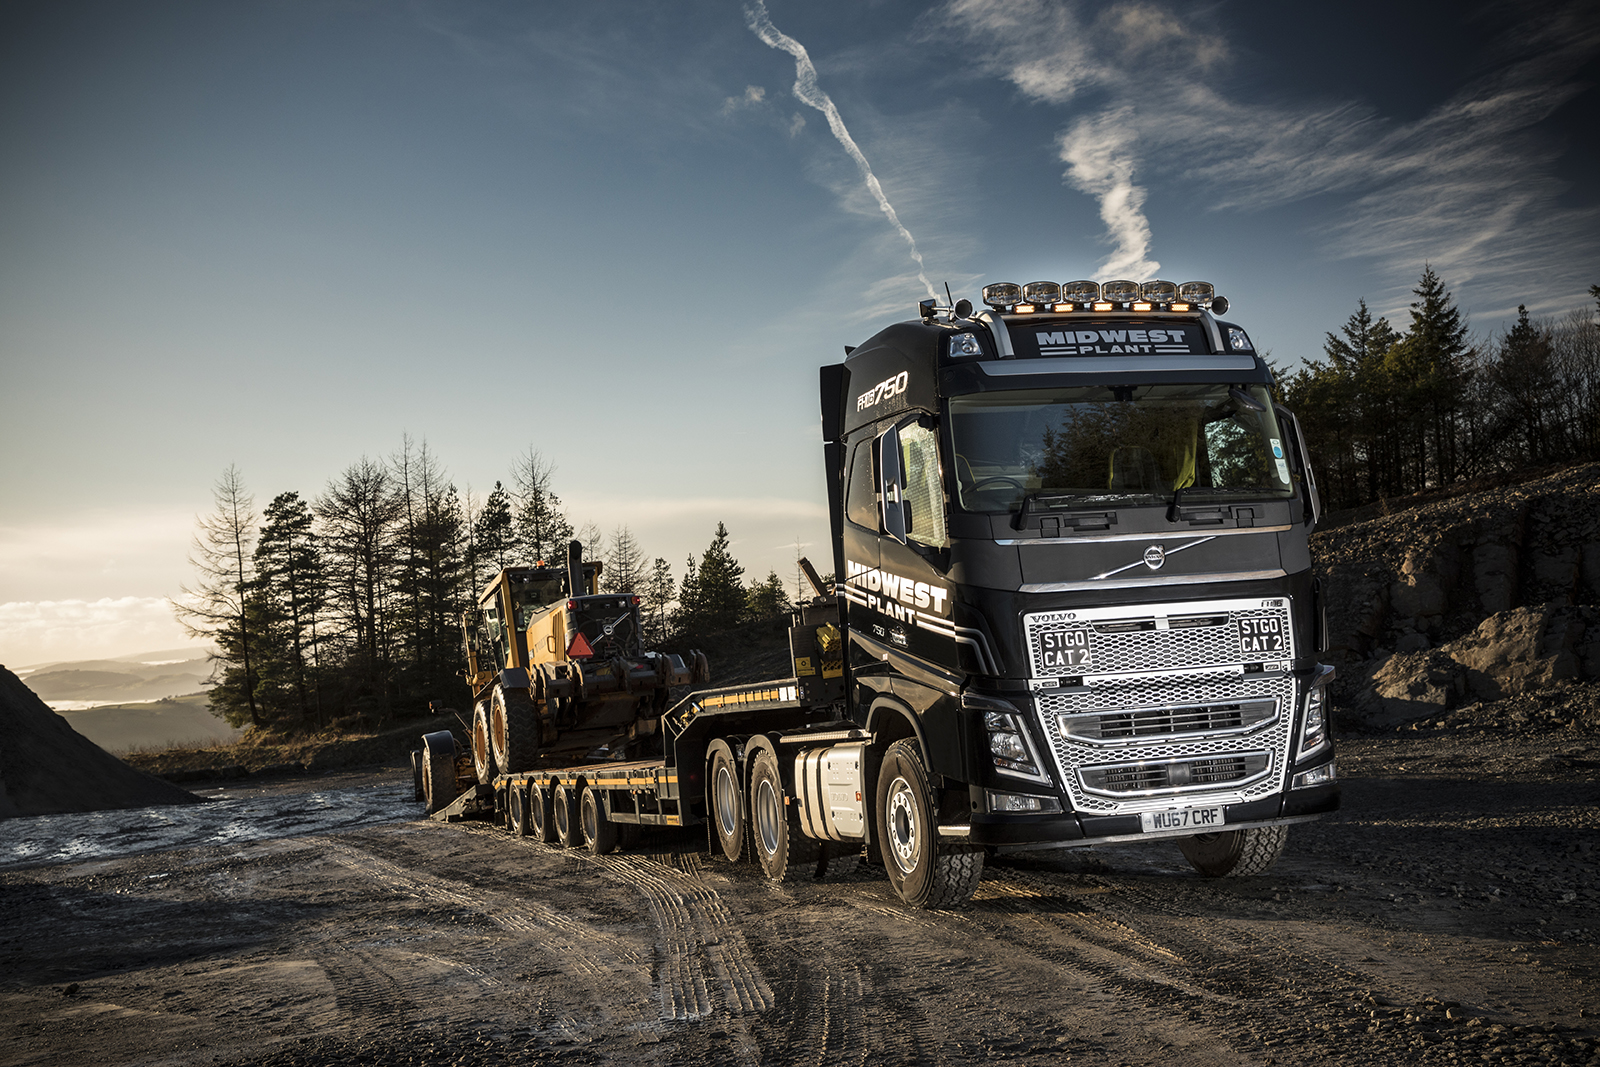 Midwest Plant Volvo FH16-750